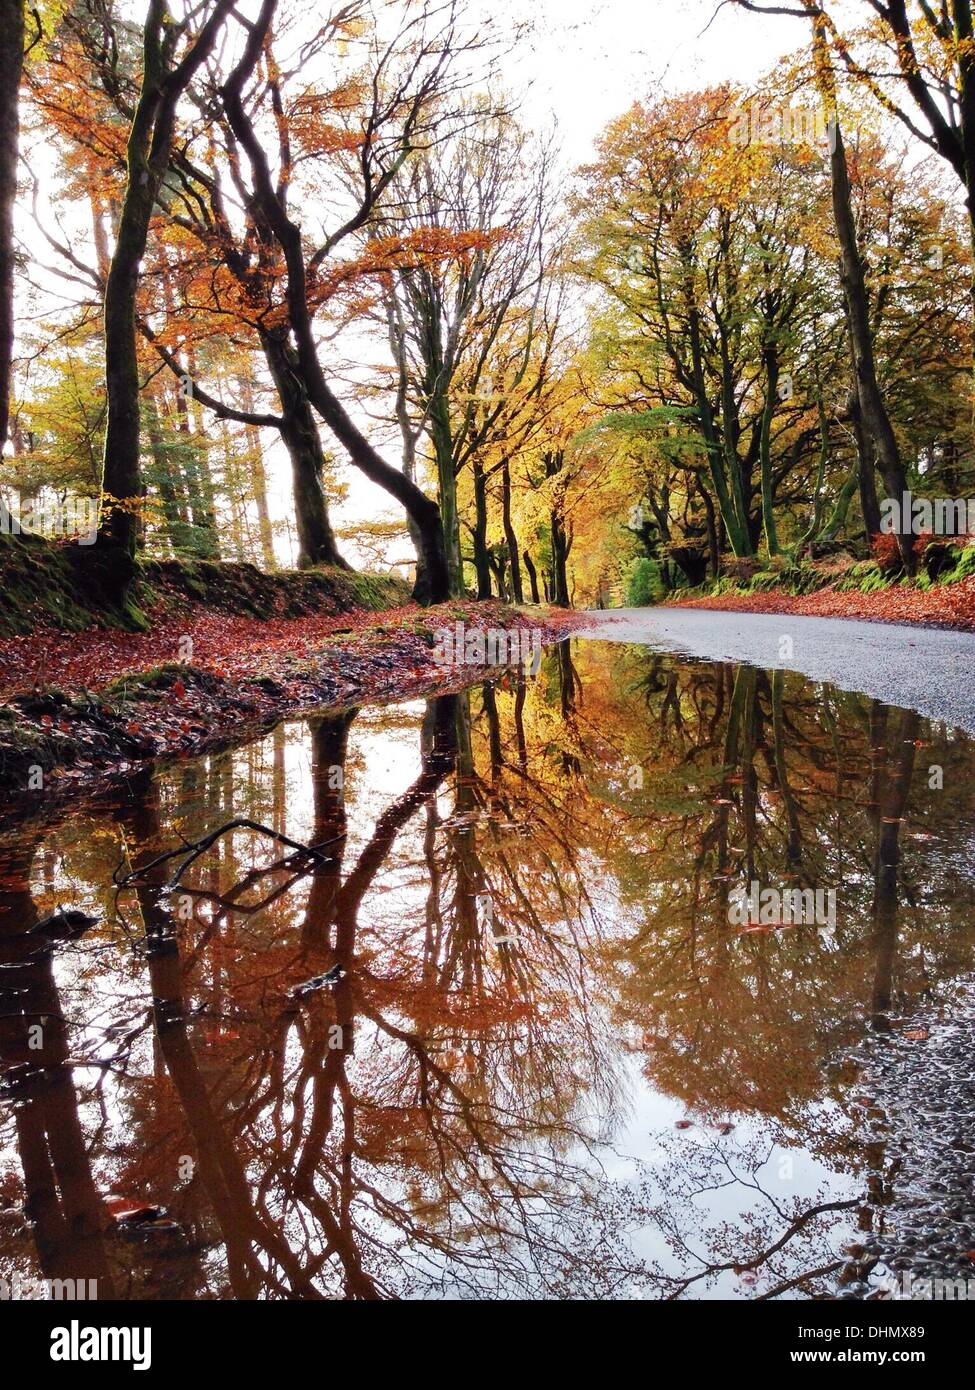 Haldon Forest, Devon, UK. 13th November 2013. UK weather. Autumn in full glorious swing after the first frost. Credit nidpor/Alamy Live News - Stock Image